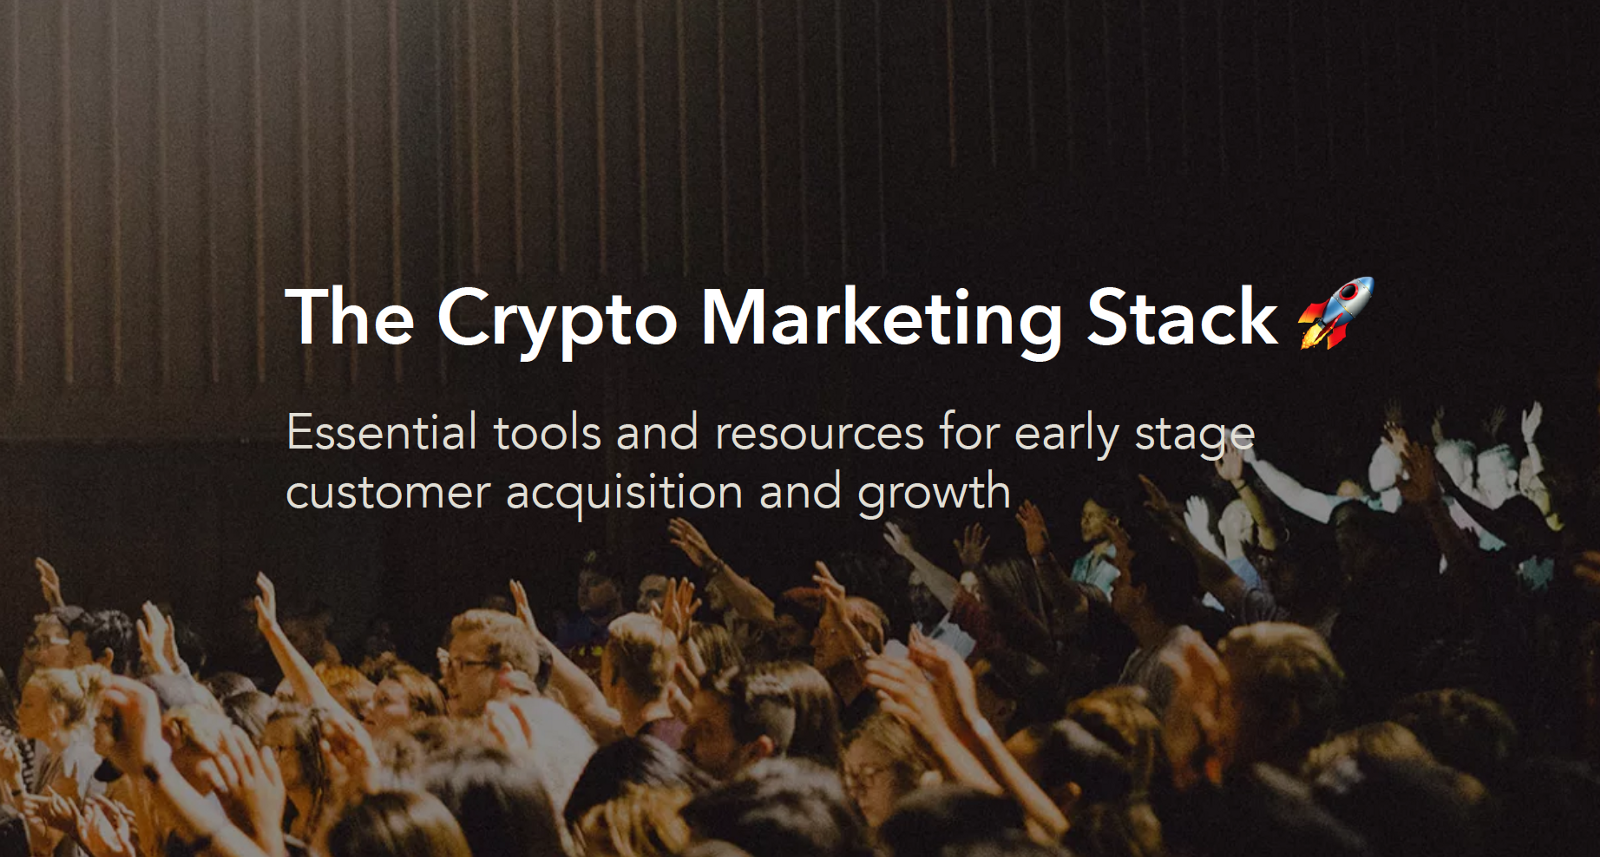 /the-crypto-marketing-stack-2a0d4898c41c feature image